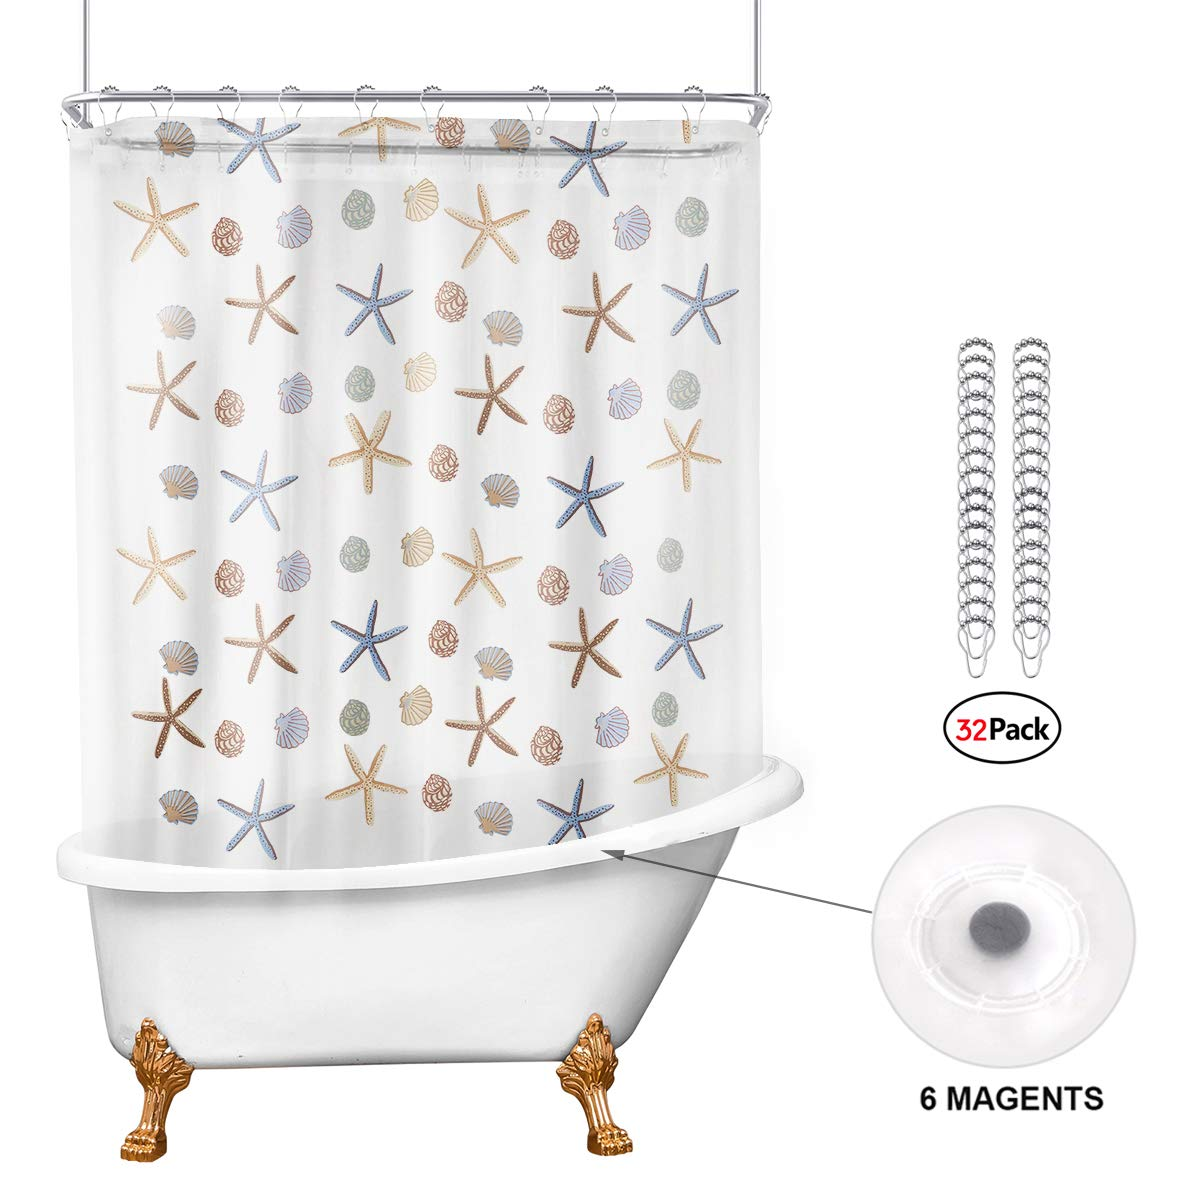 Riyidecor Ocean Starfish 180x70 Shower Curtain Set with Magnets All Around Clawfoot Tub Bathroom Decor Panel PEVA Vinyl Extra Wide 32 Pack Metal Shower Hooks